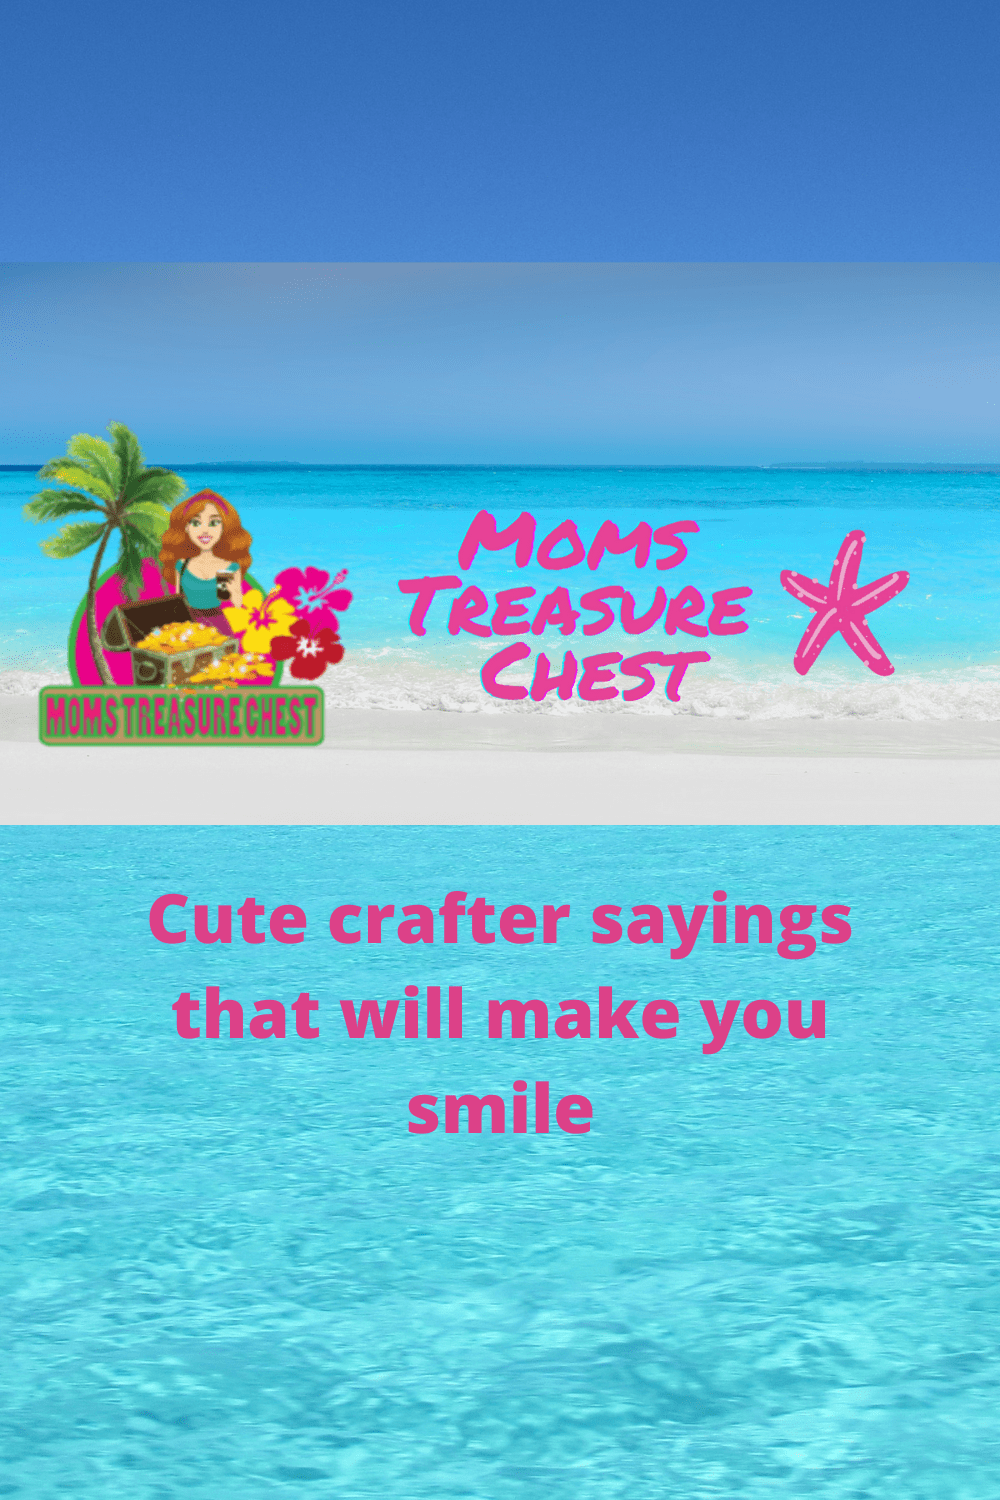 Crafters quotes